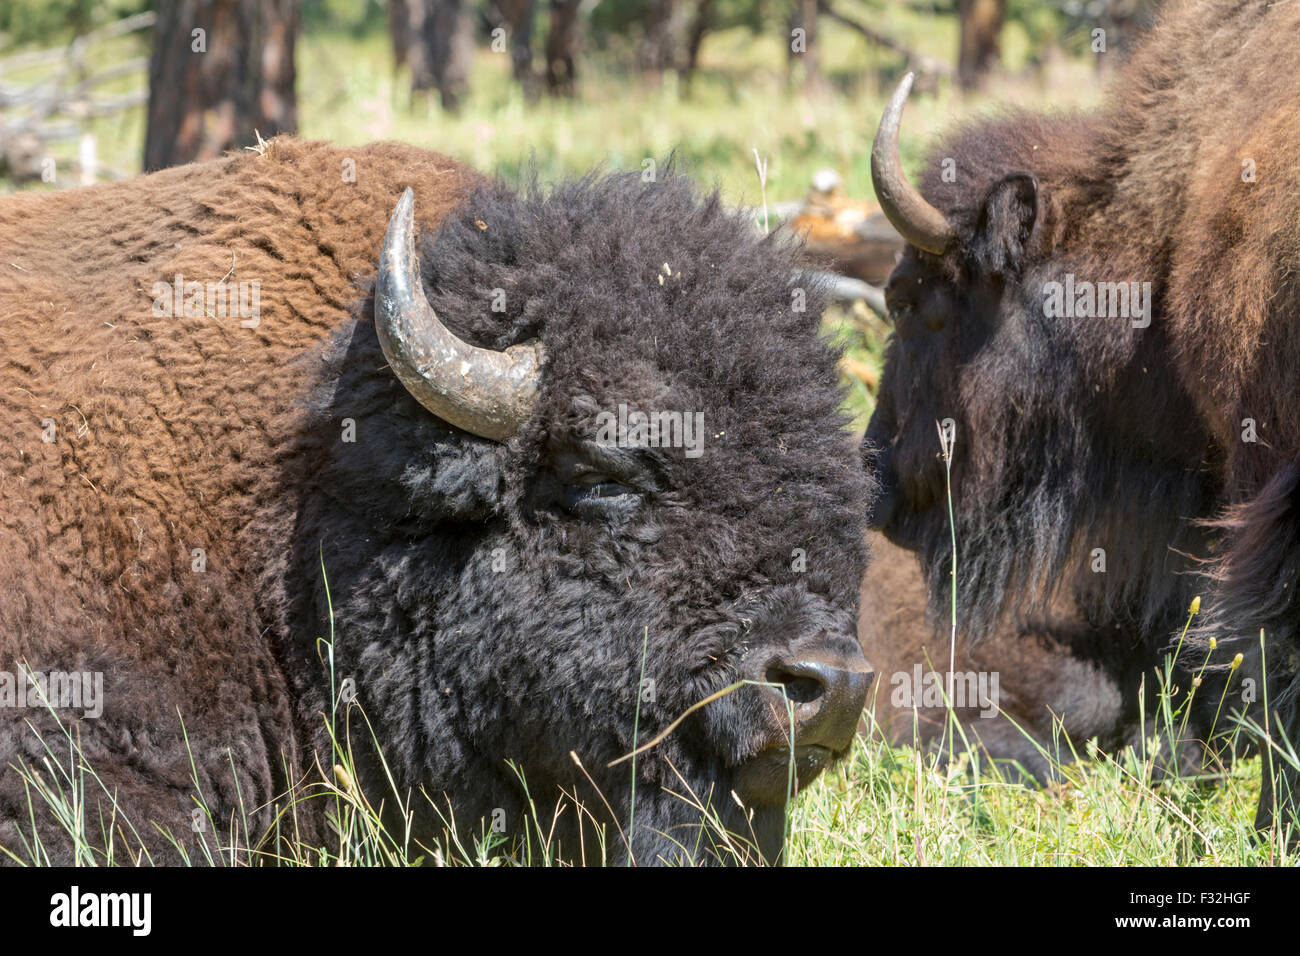 A bison, buffalo, in a field. Stock Photo